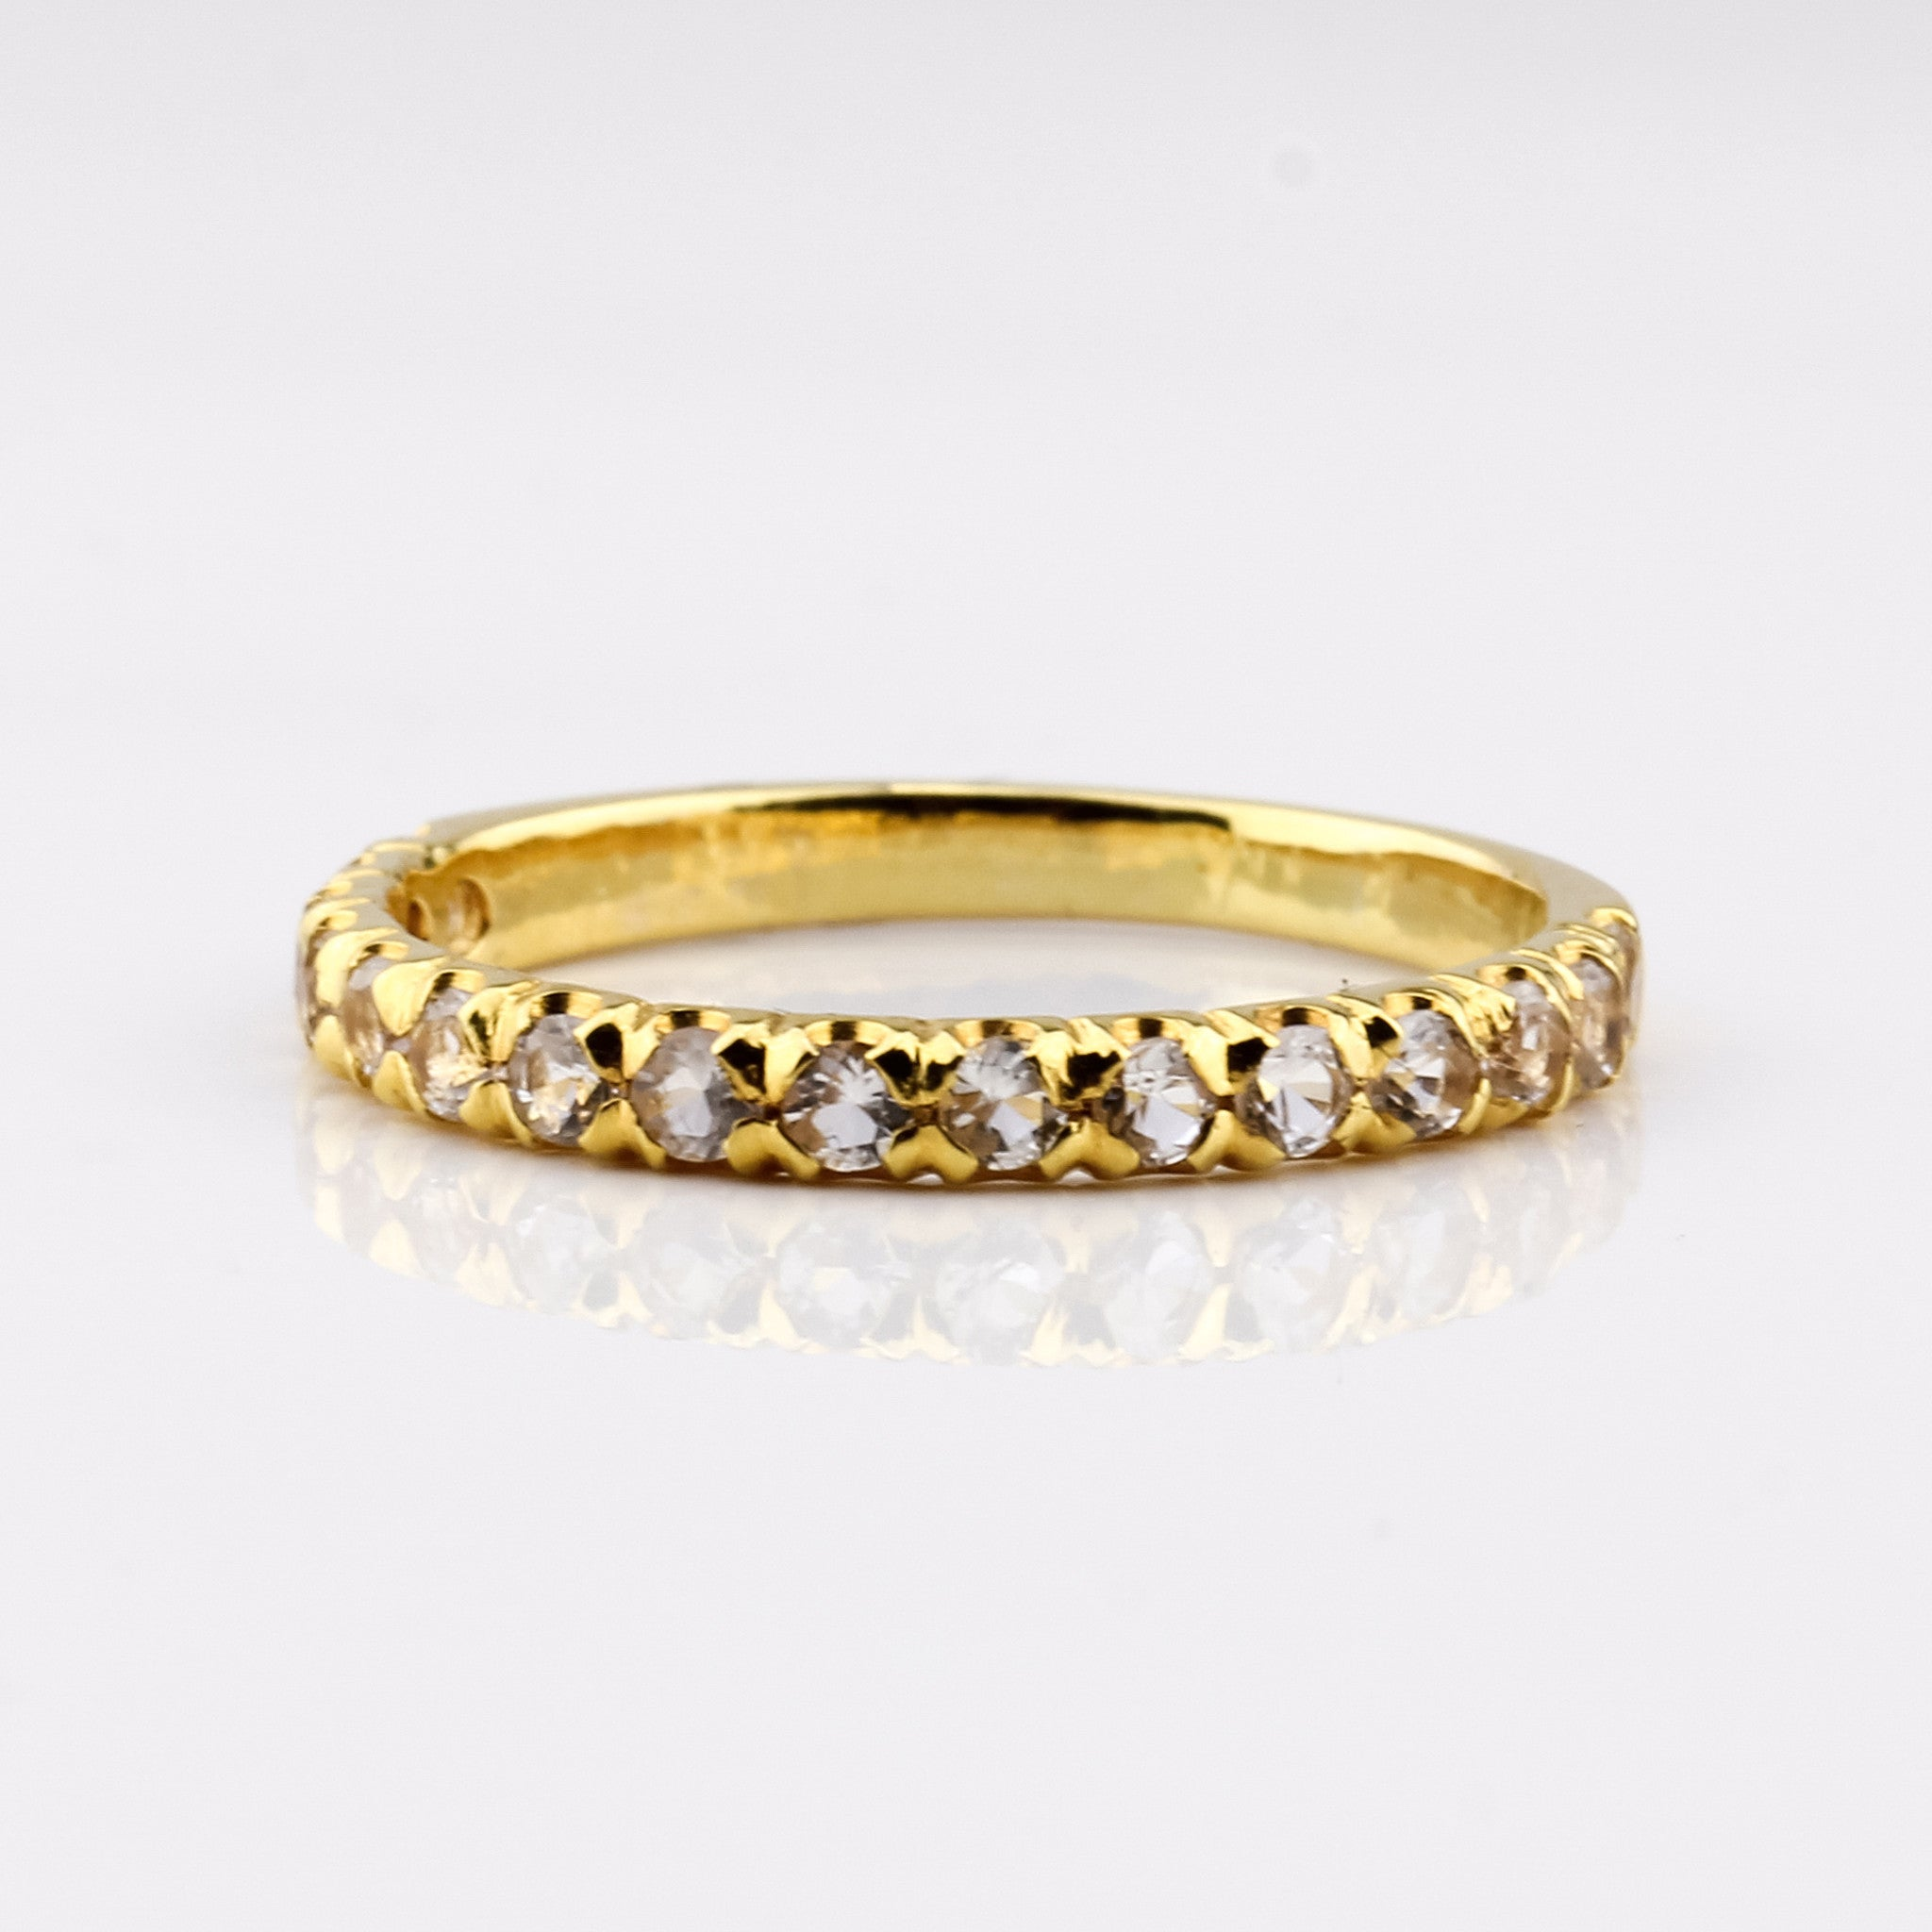 Half Eternity Ring - Yellow Gold & Zircon